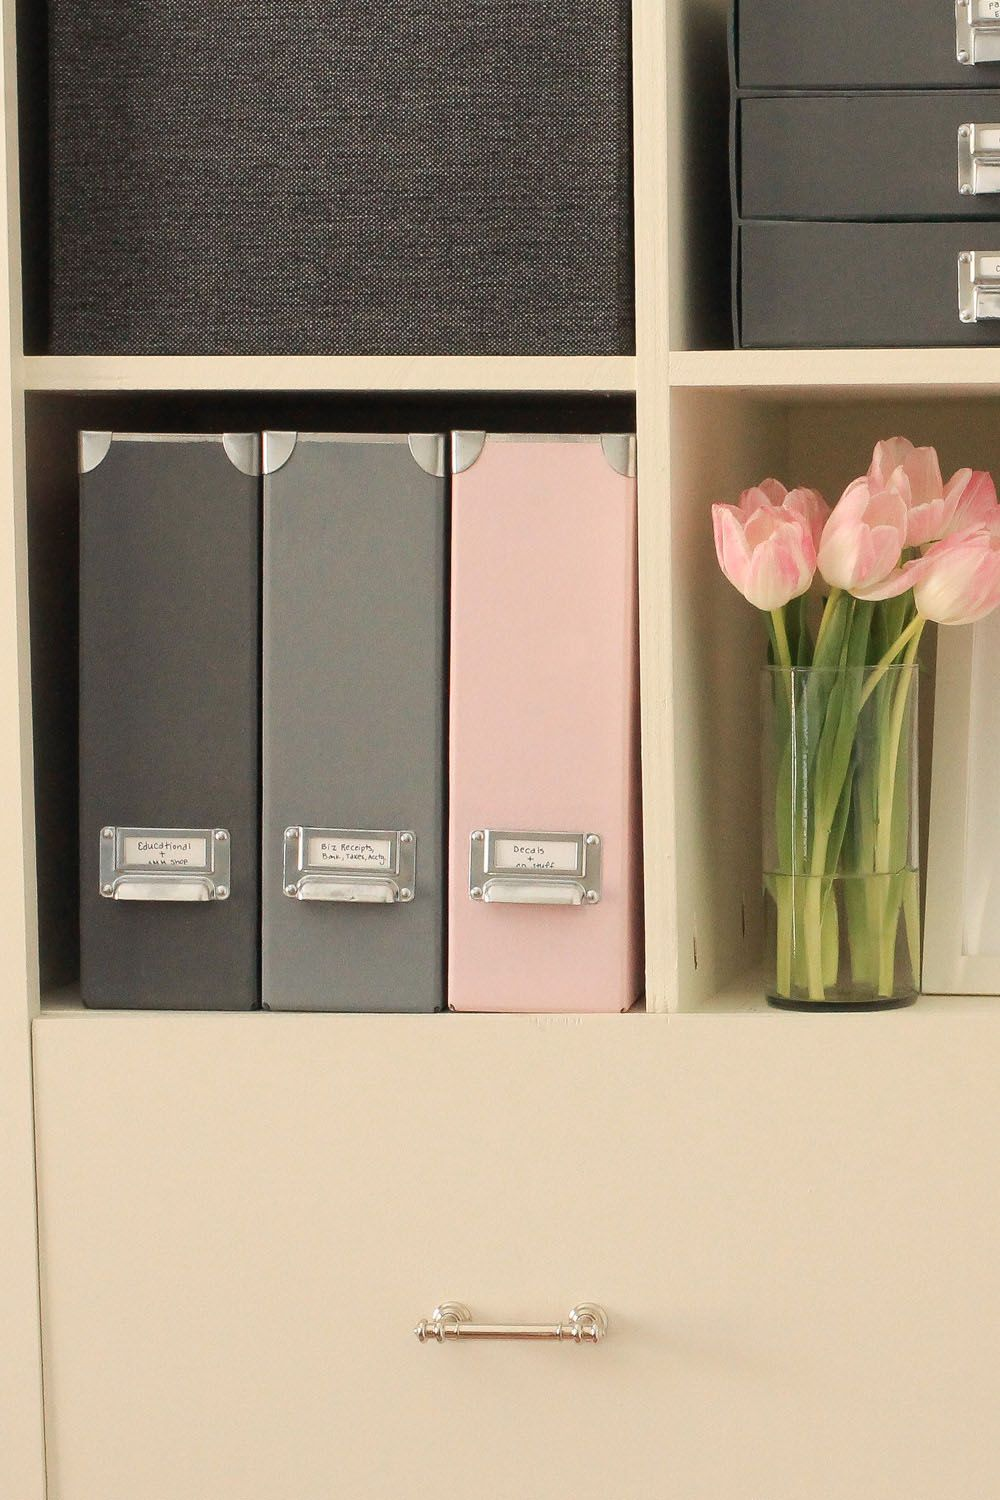 Ikea Hack Magazine Files Magazine Files Guest Room Office Home Office Storage